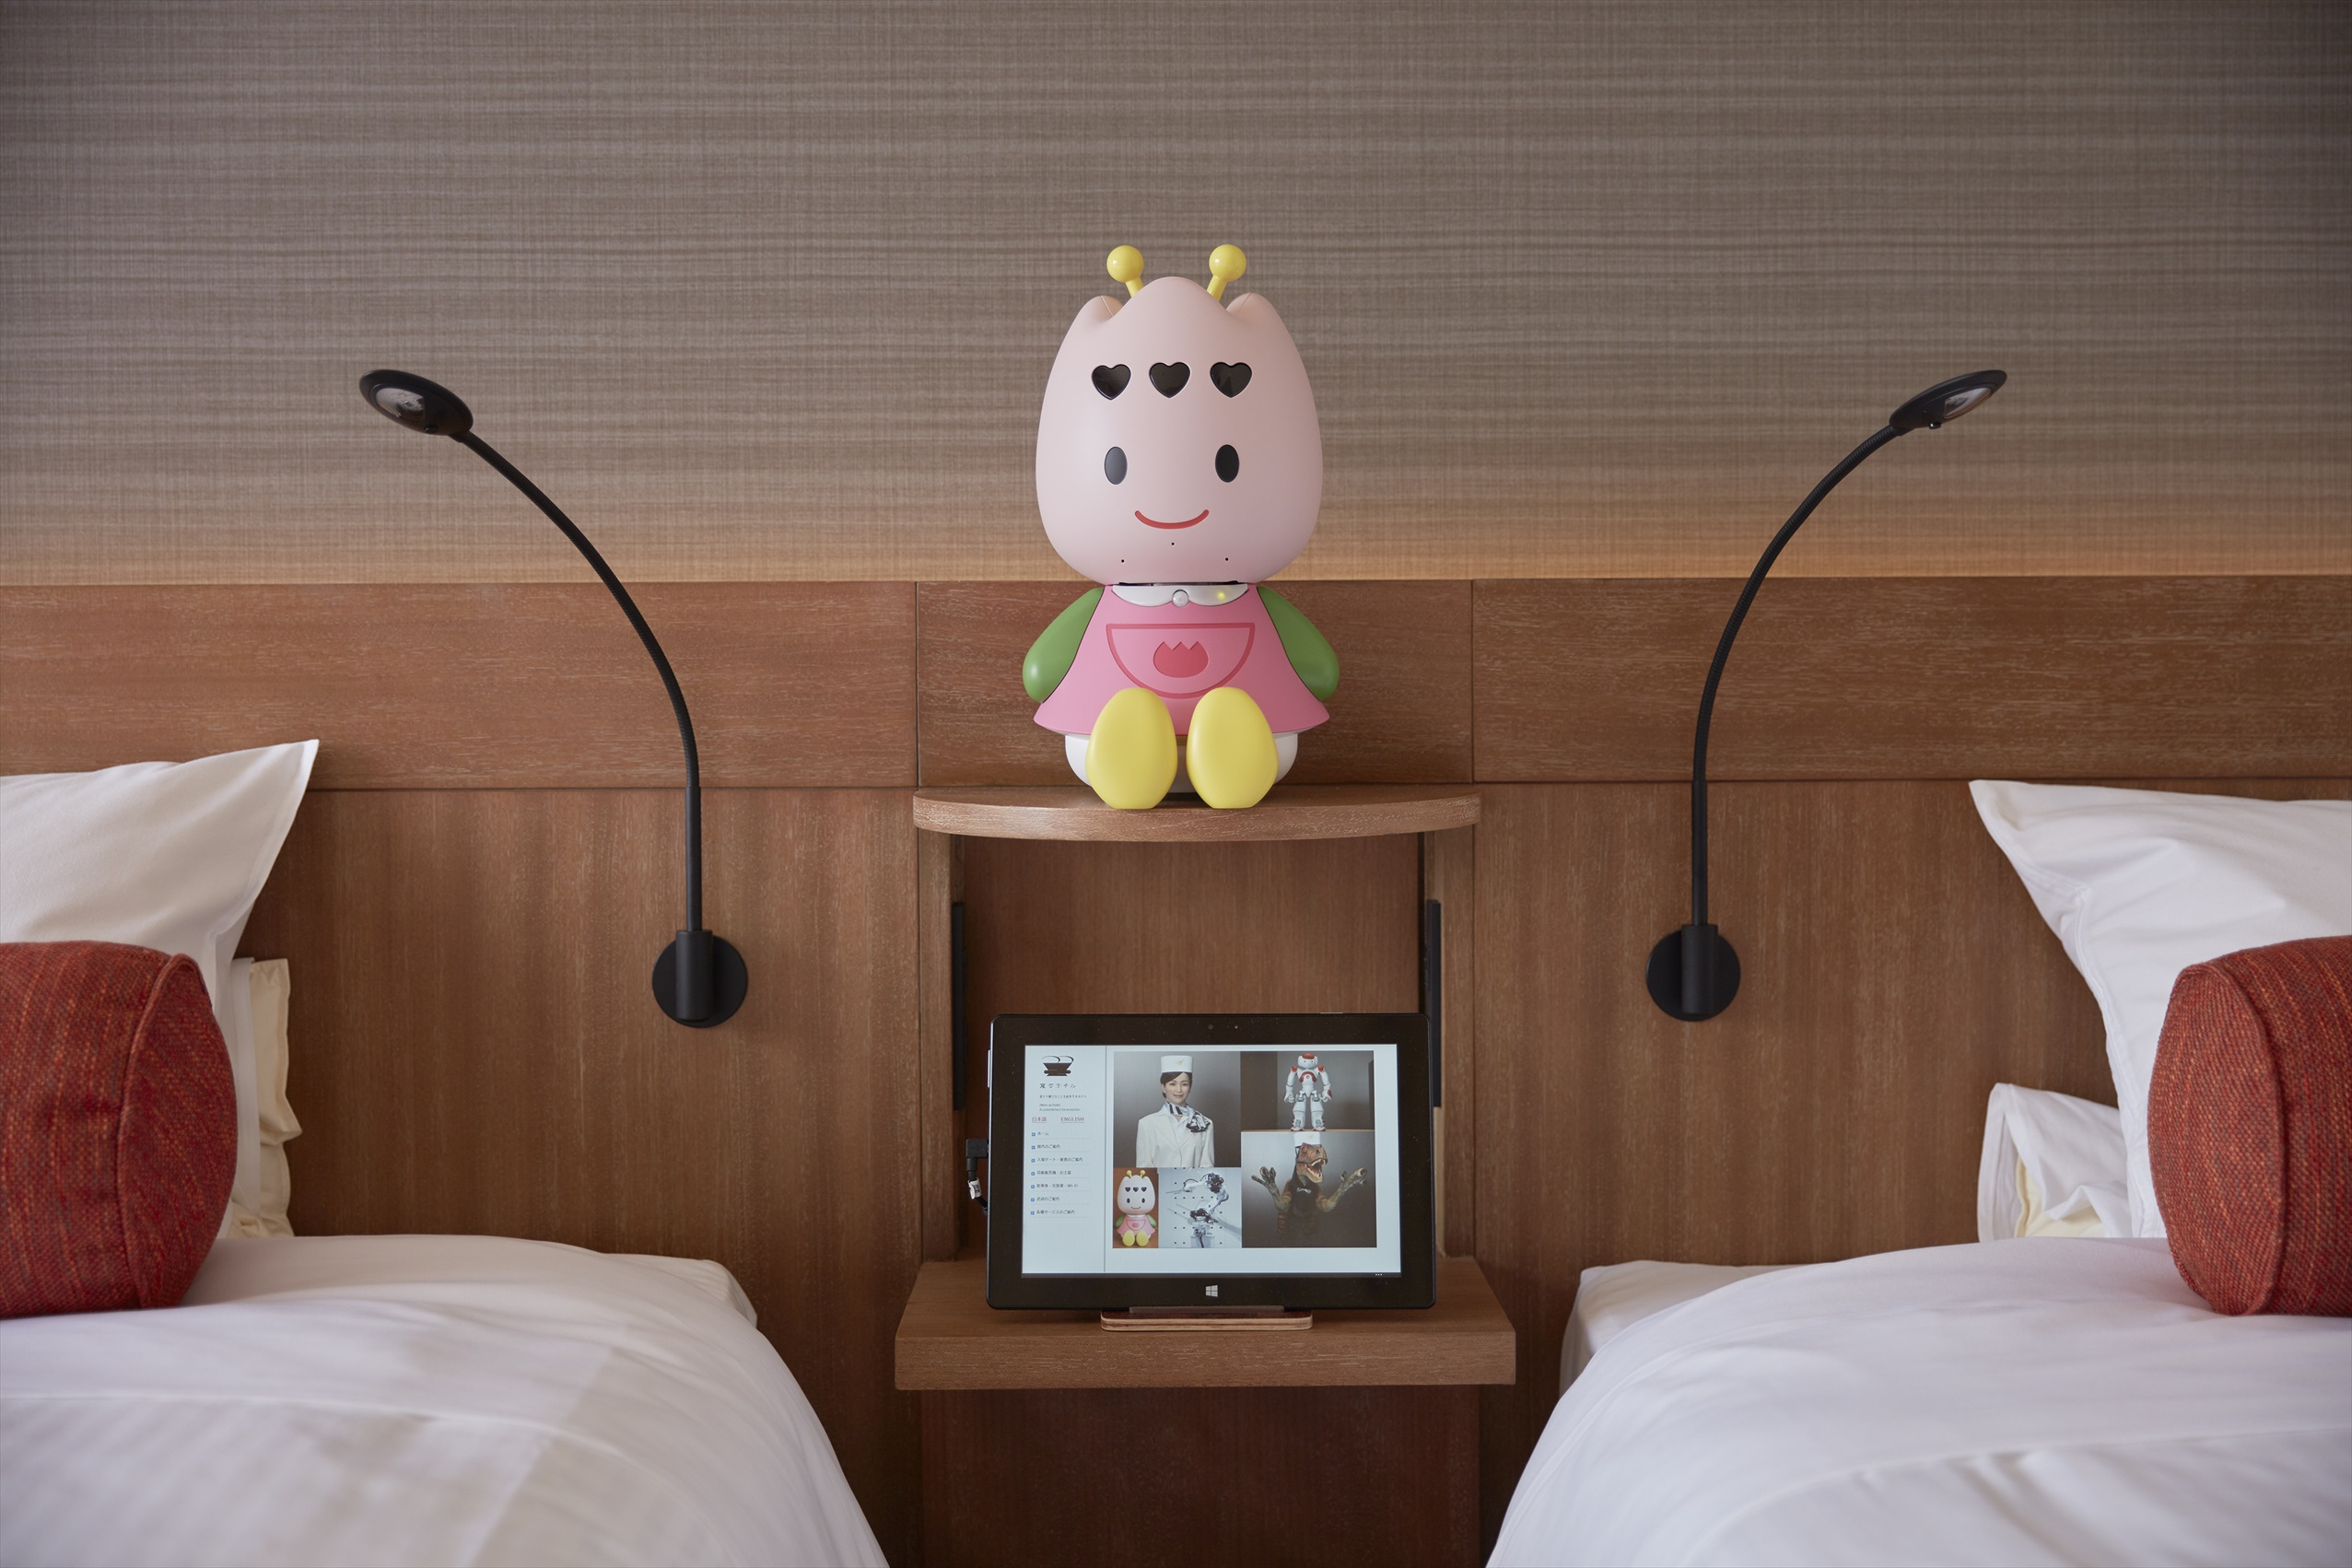 Henn-na Hotel Tulip robot - Photo by HUIS TEN BOSCH